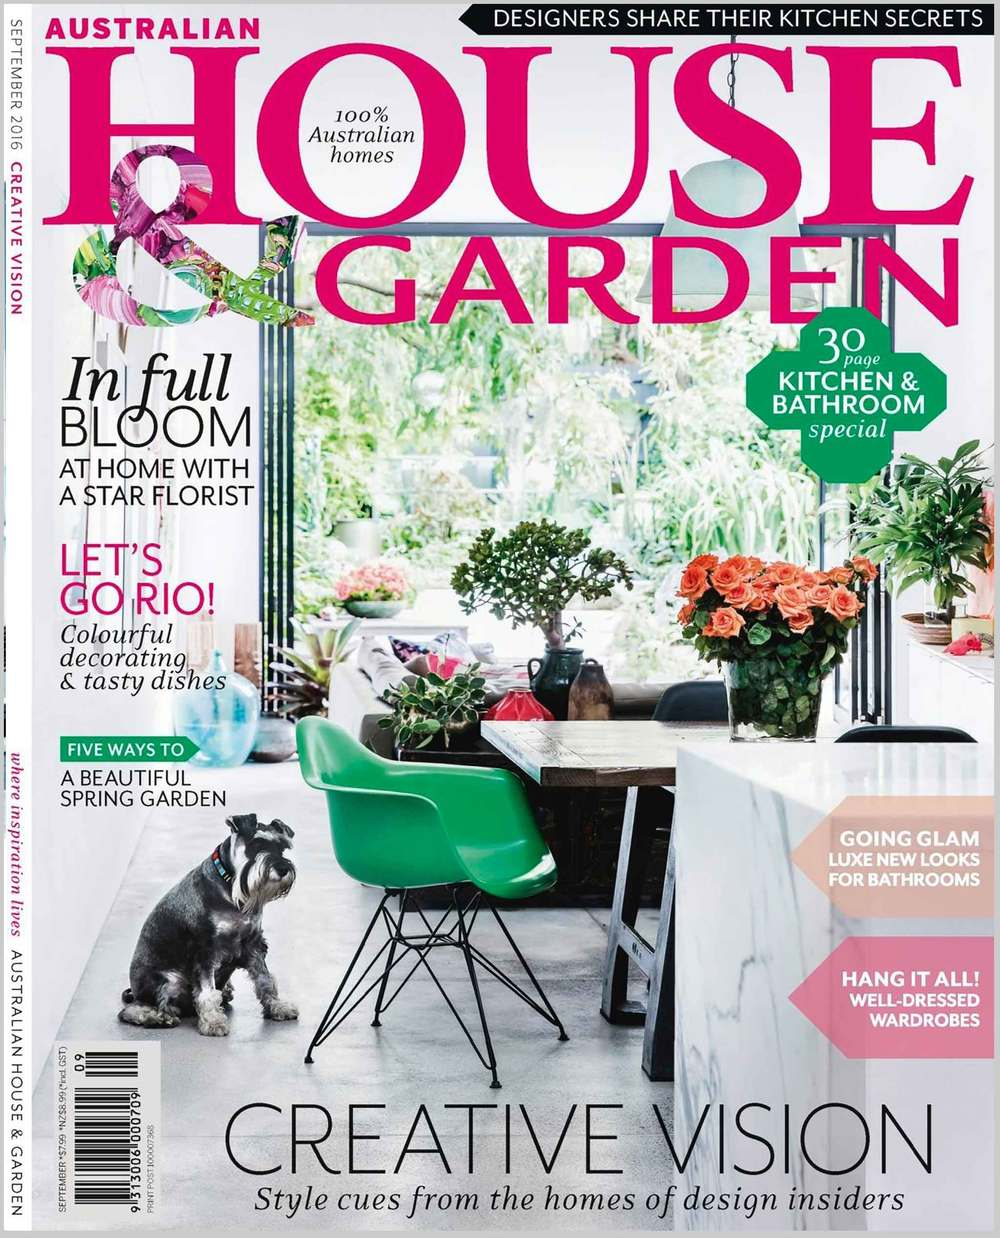 EugenieKawabata_HouseandGarden.jpg